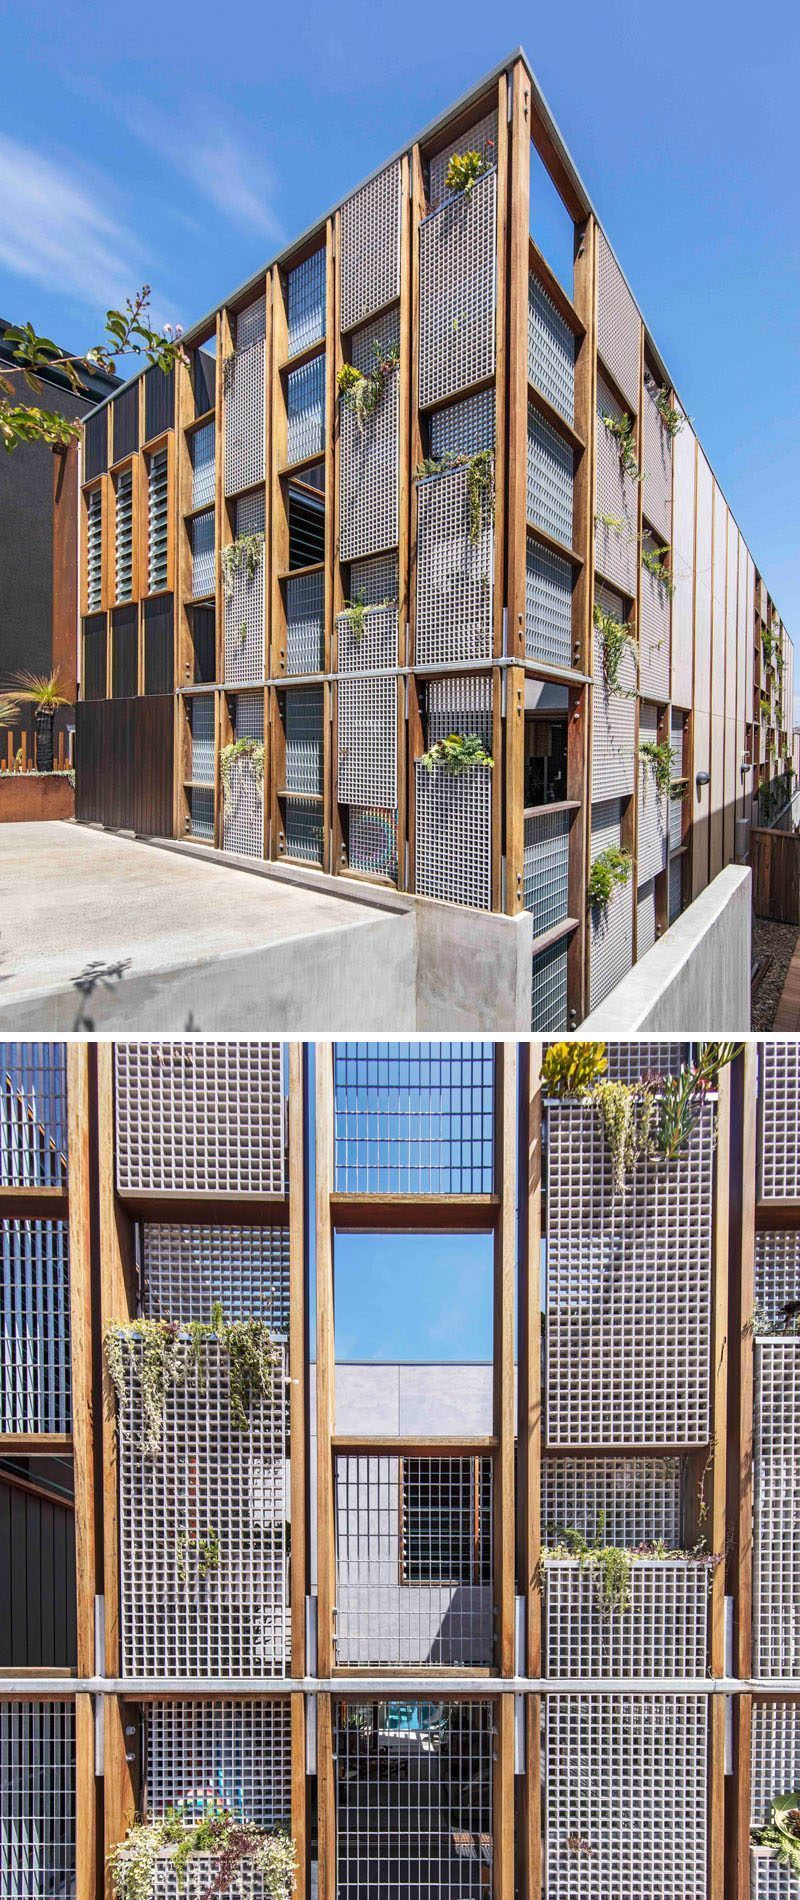 The facade of this modern house is made up of a wood grid with windows and perforated metal panels these metal panels allow for a vertical garden to be